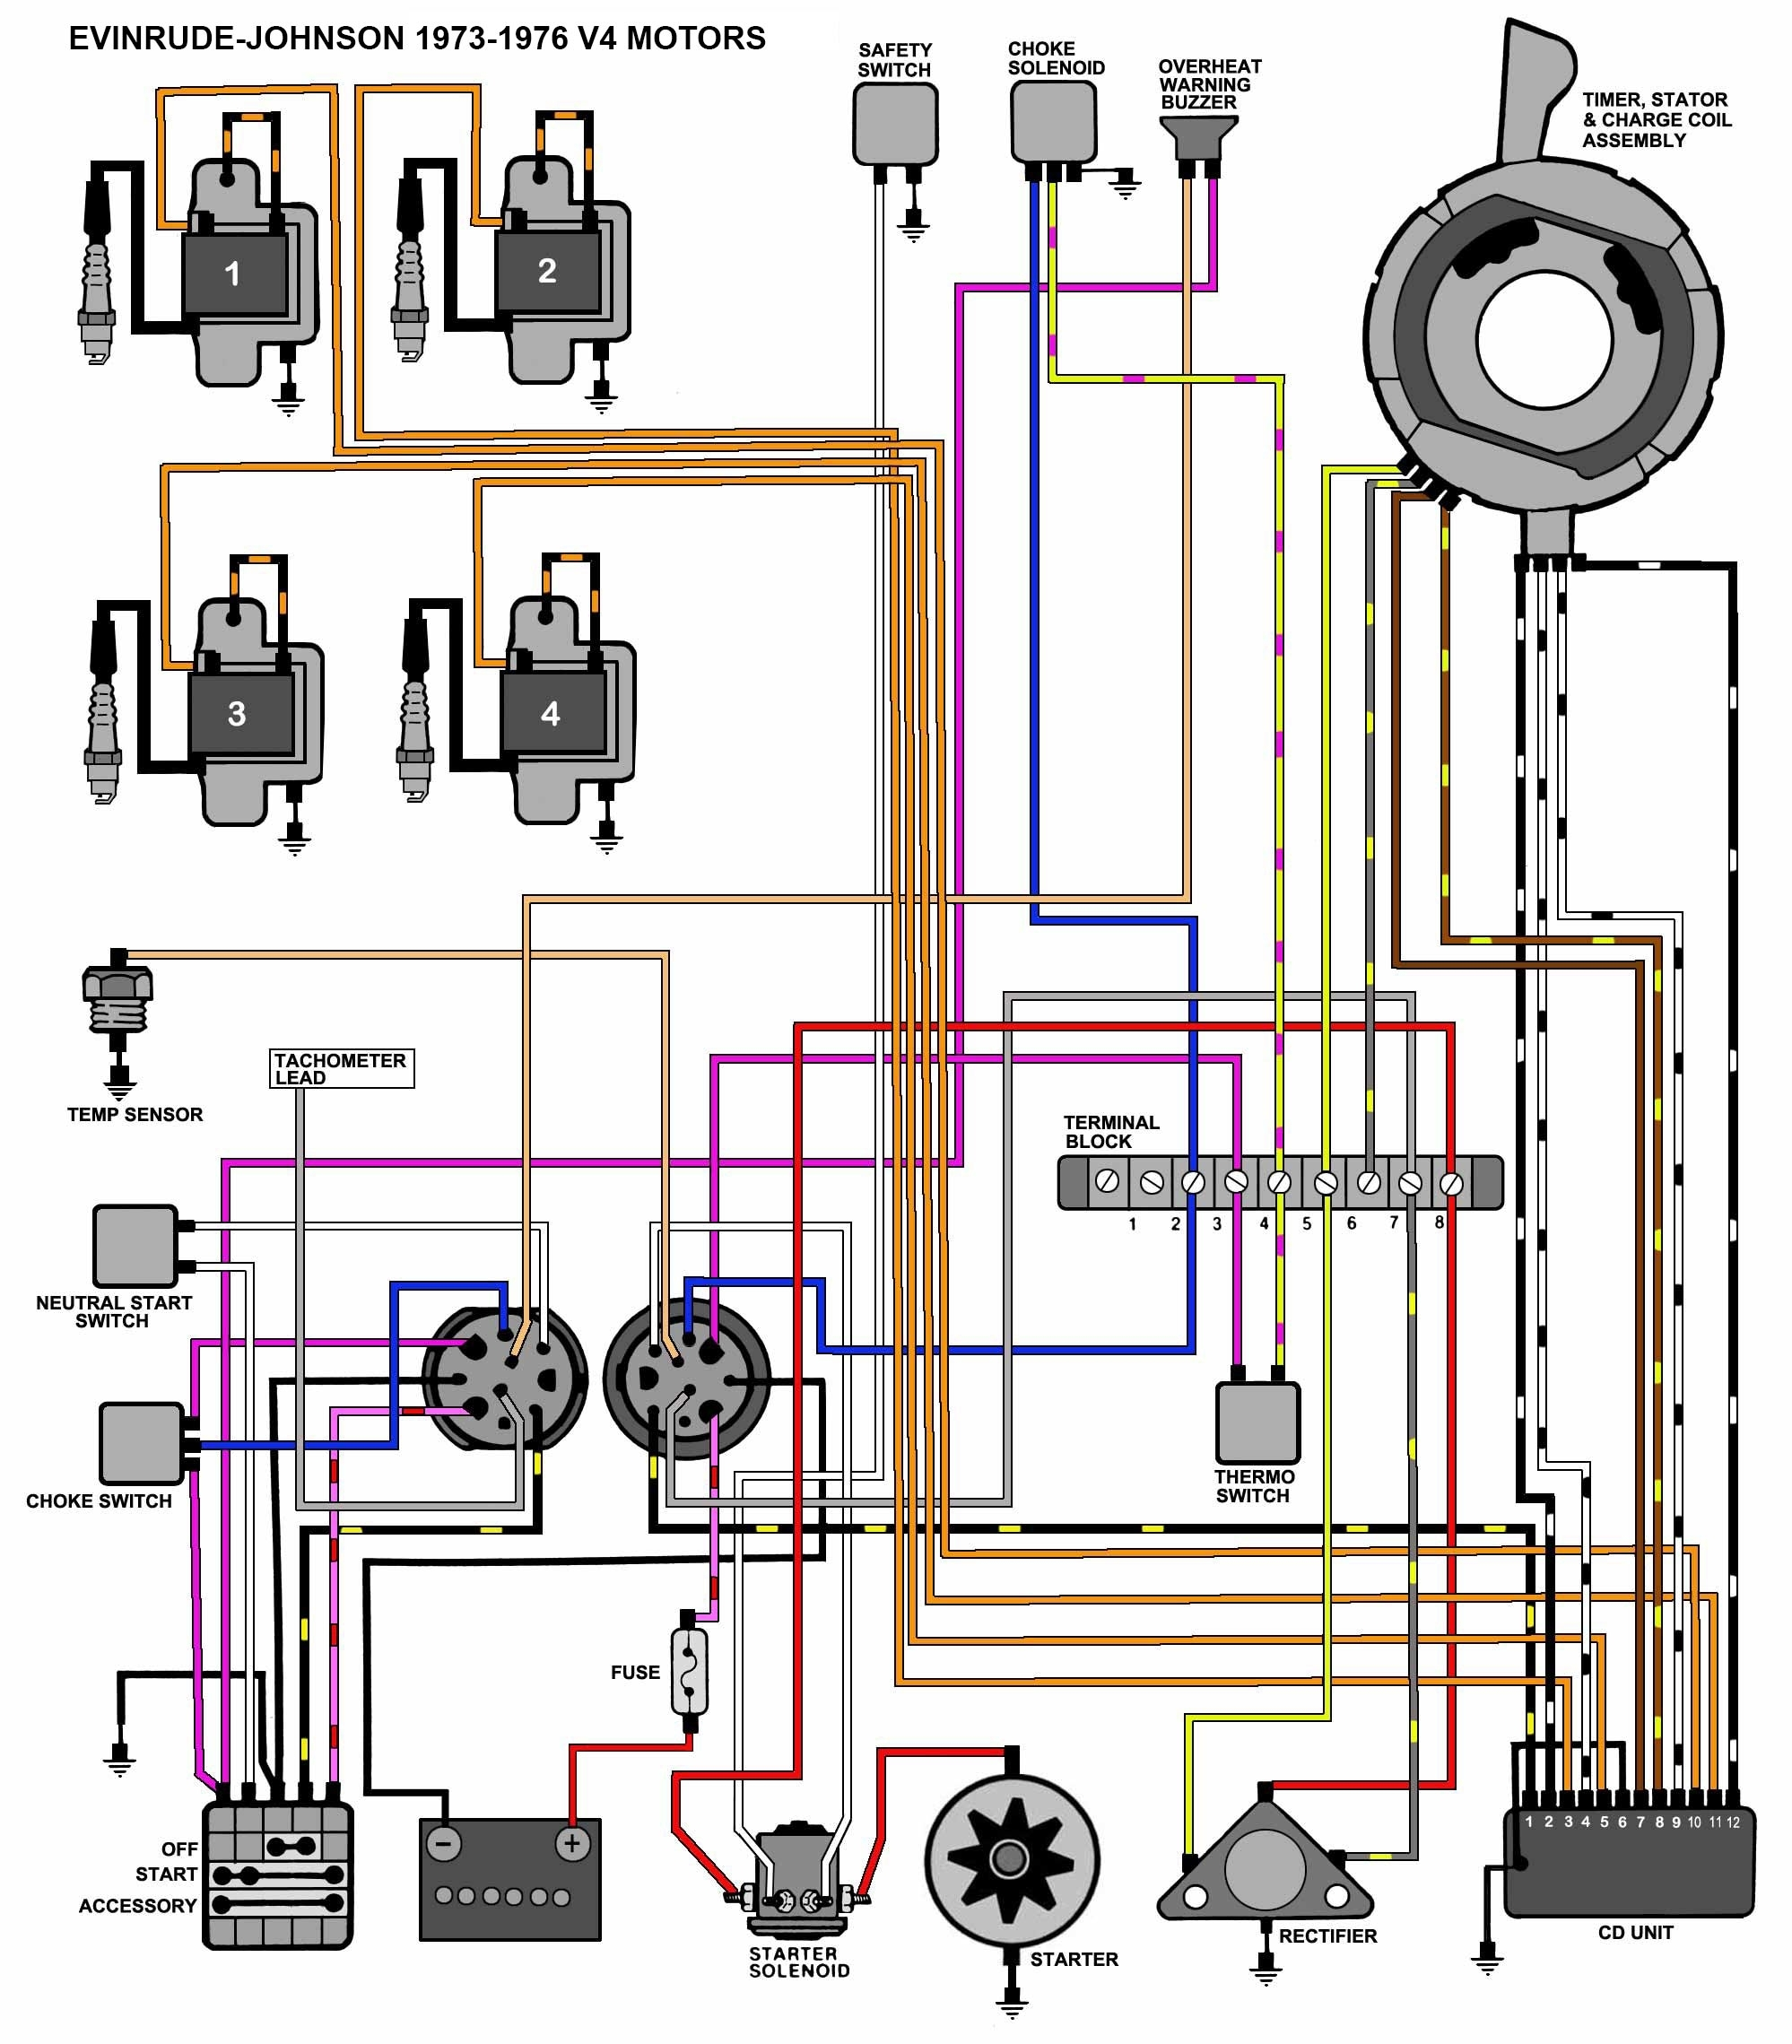 evinrude ignition switch wiring diagram with 1969 omc 55 wiring throughout 70 hp evinrude wiring diagram?resize\=665%2C759\&ssl\=1 wiring diagram for 1983 starcraft starcraft trailer wiring diagram  at creativeand.co